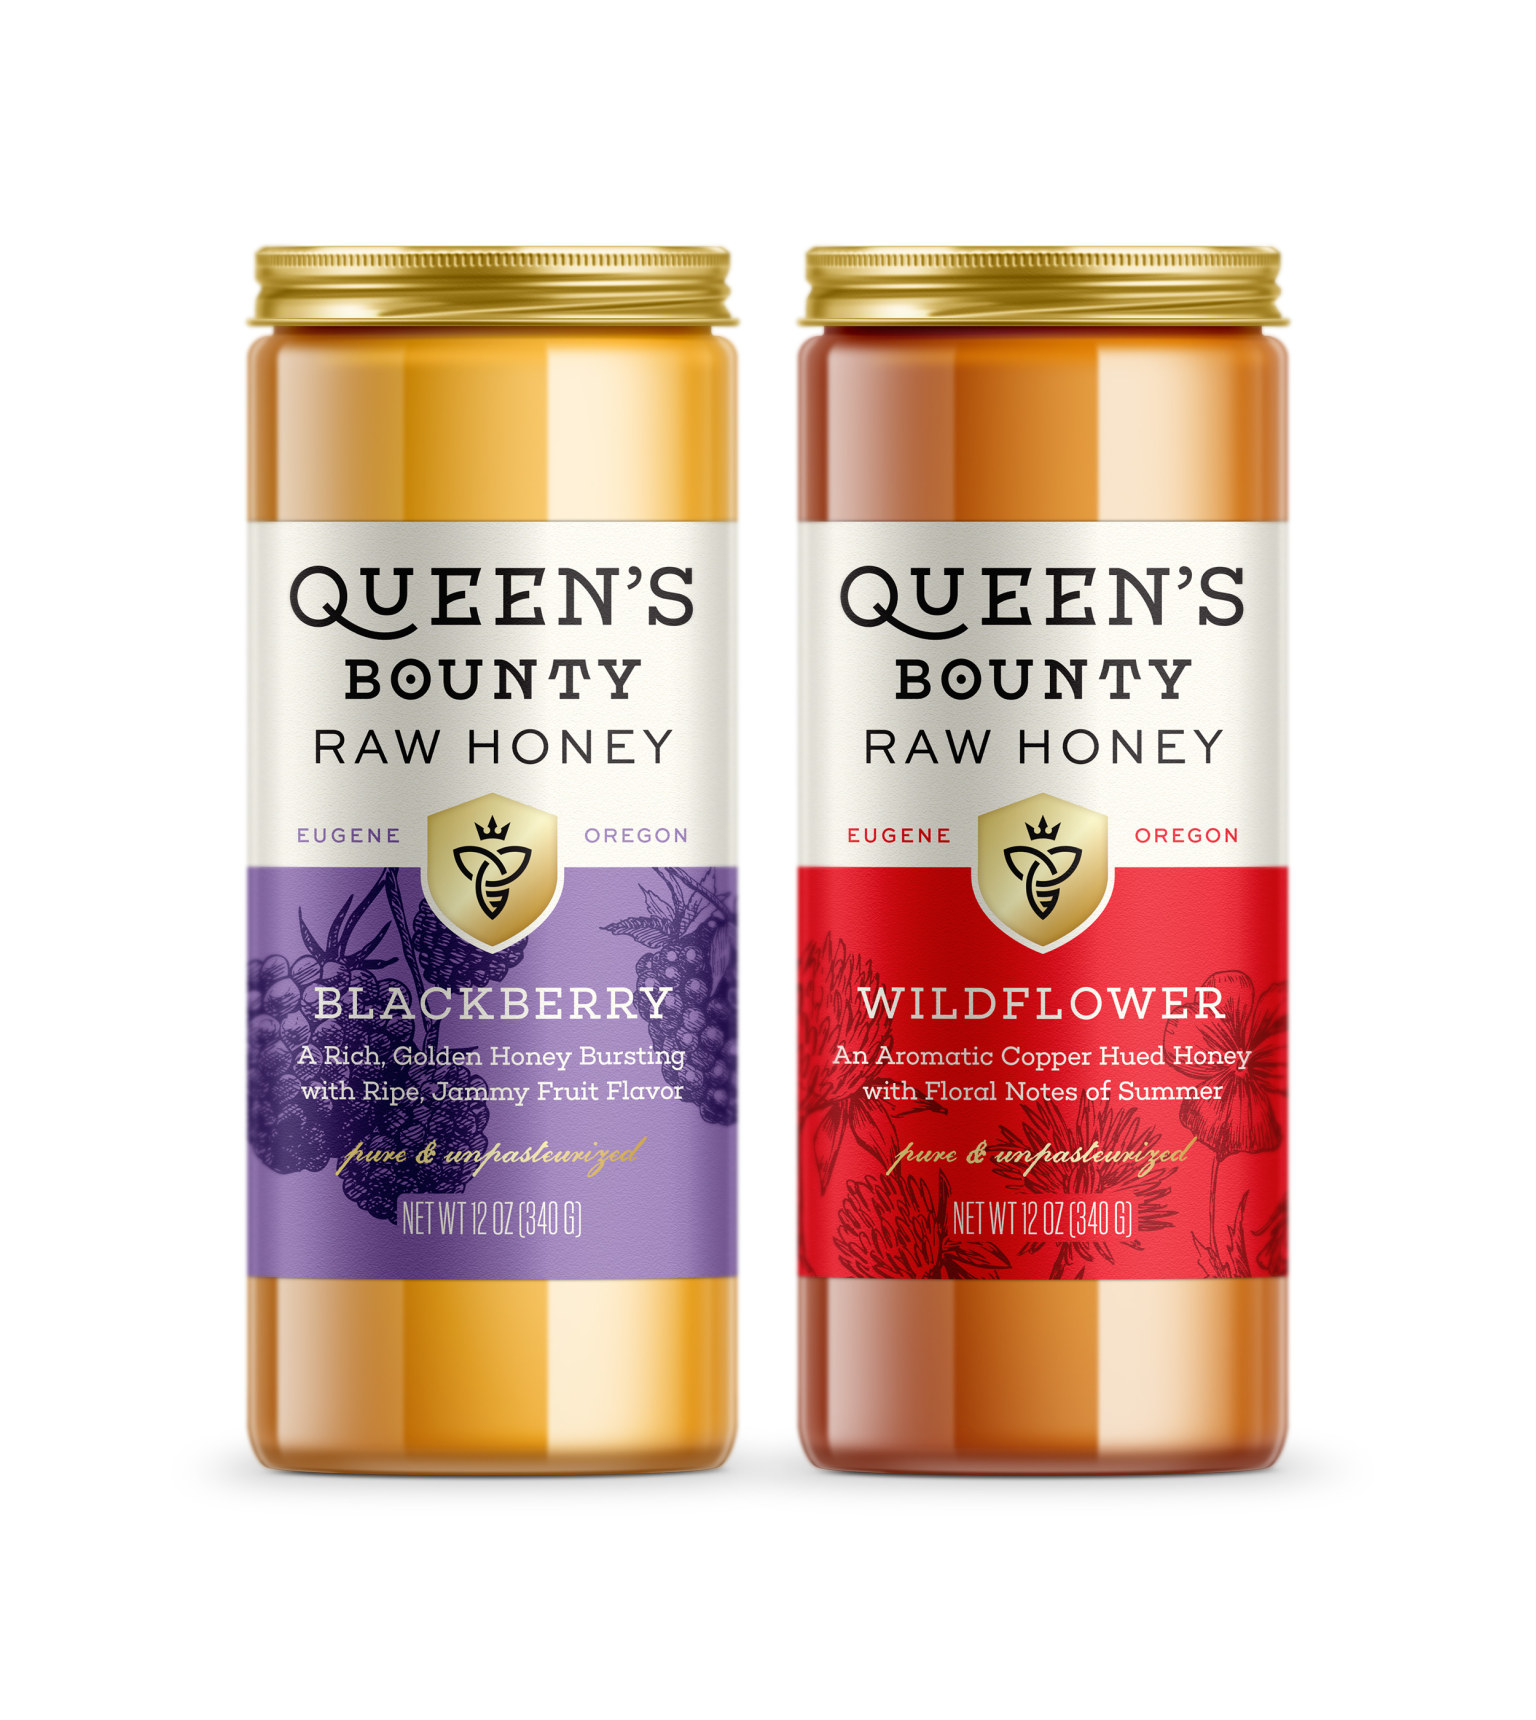 Queen's Bounty Honey